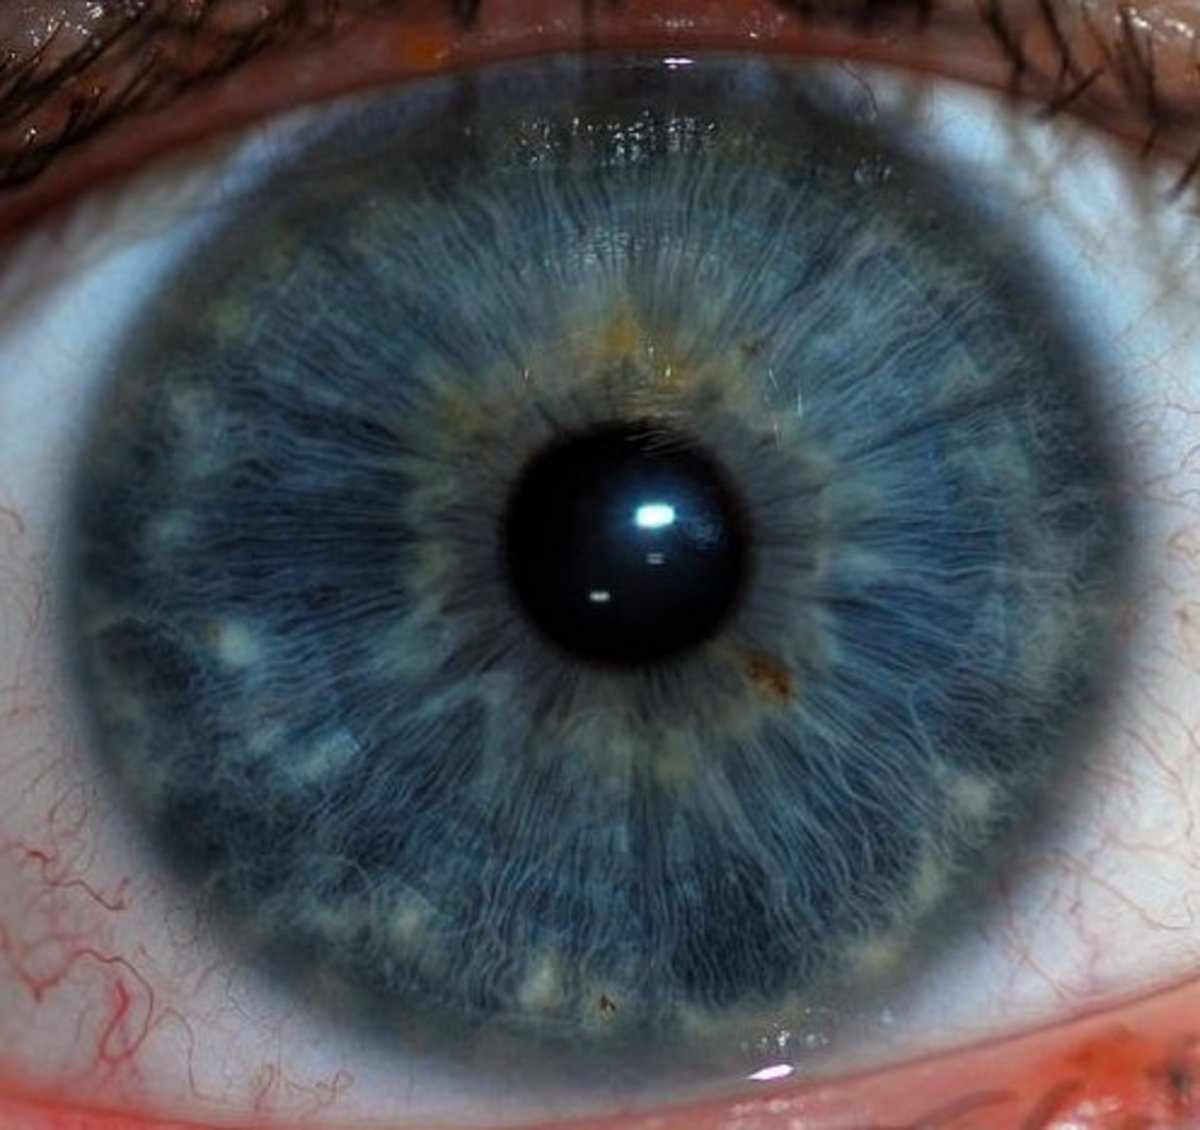 Definition of Dilation of the Eye